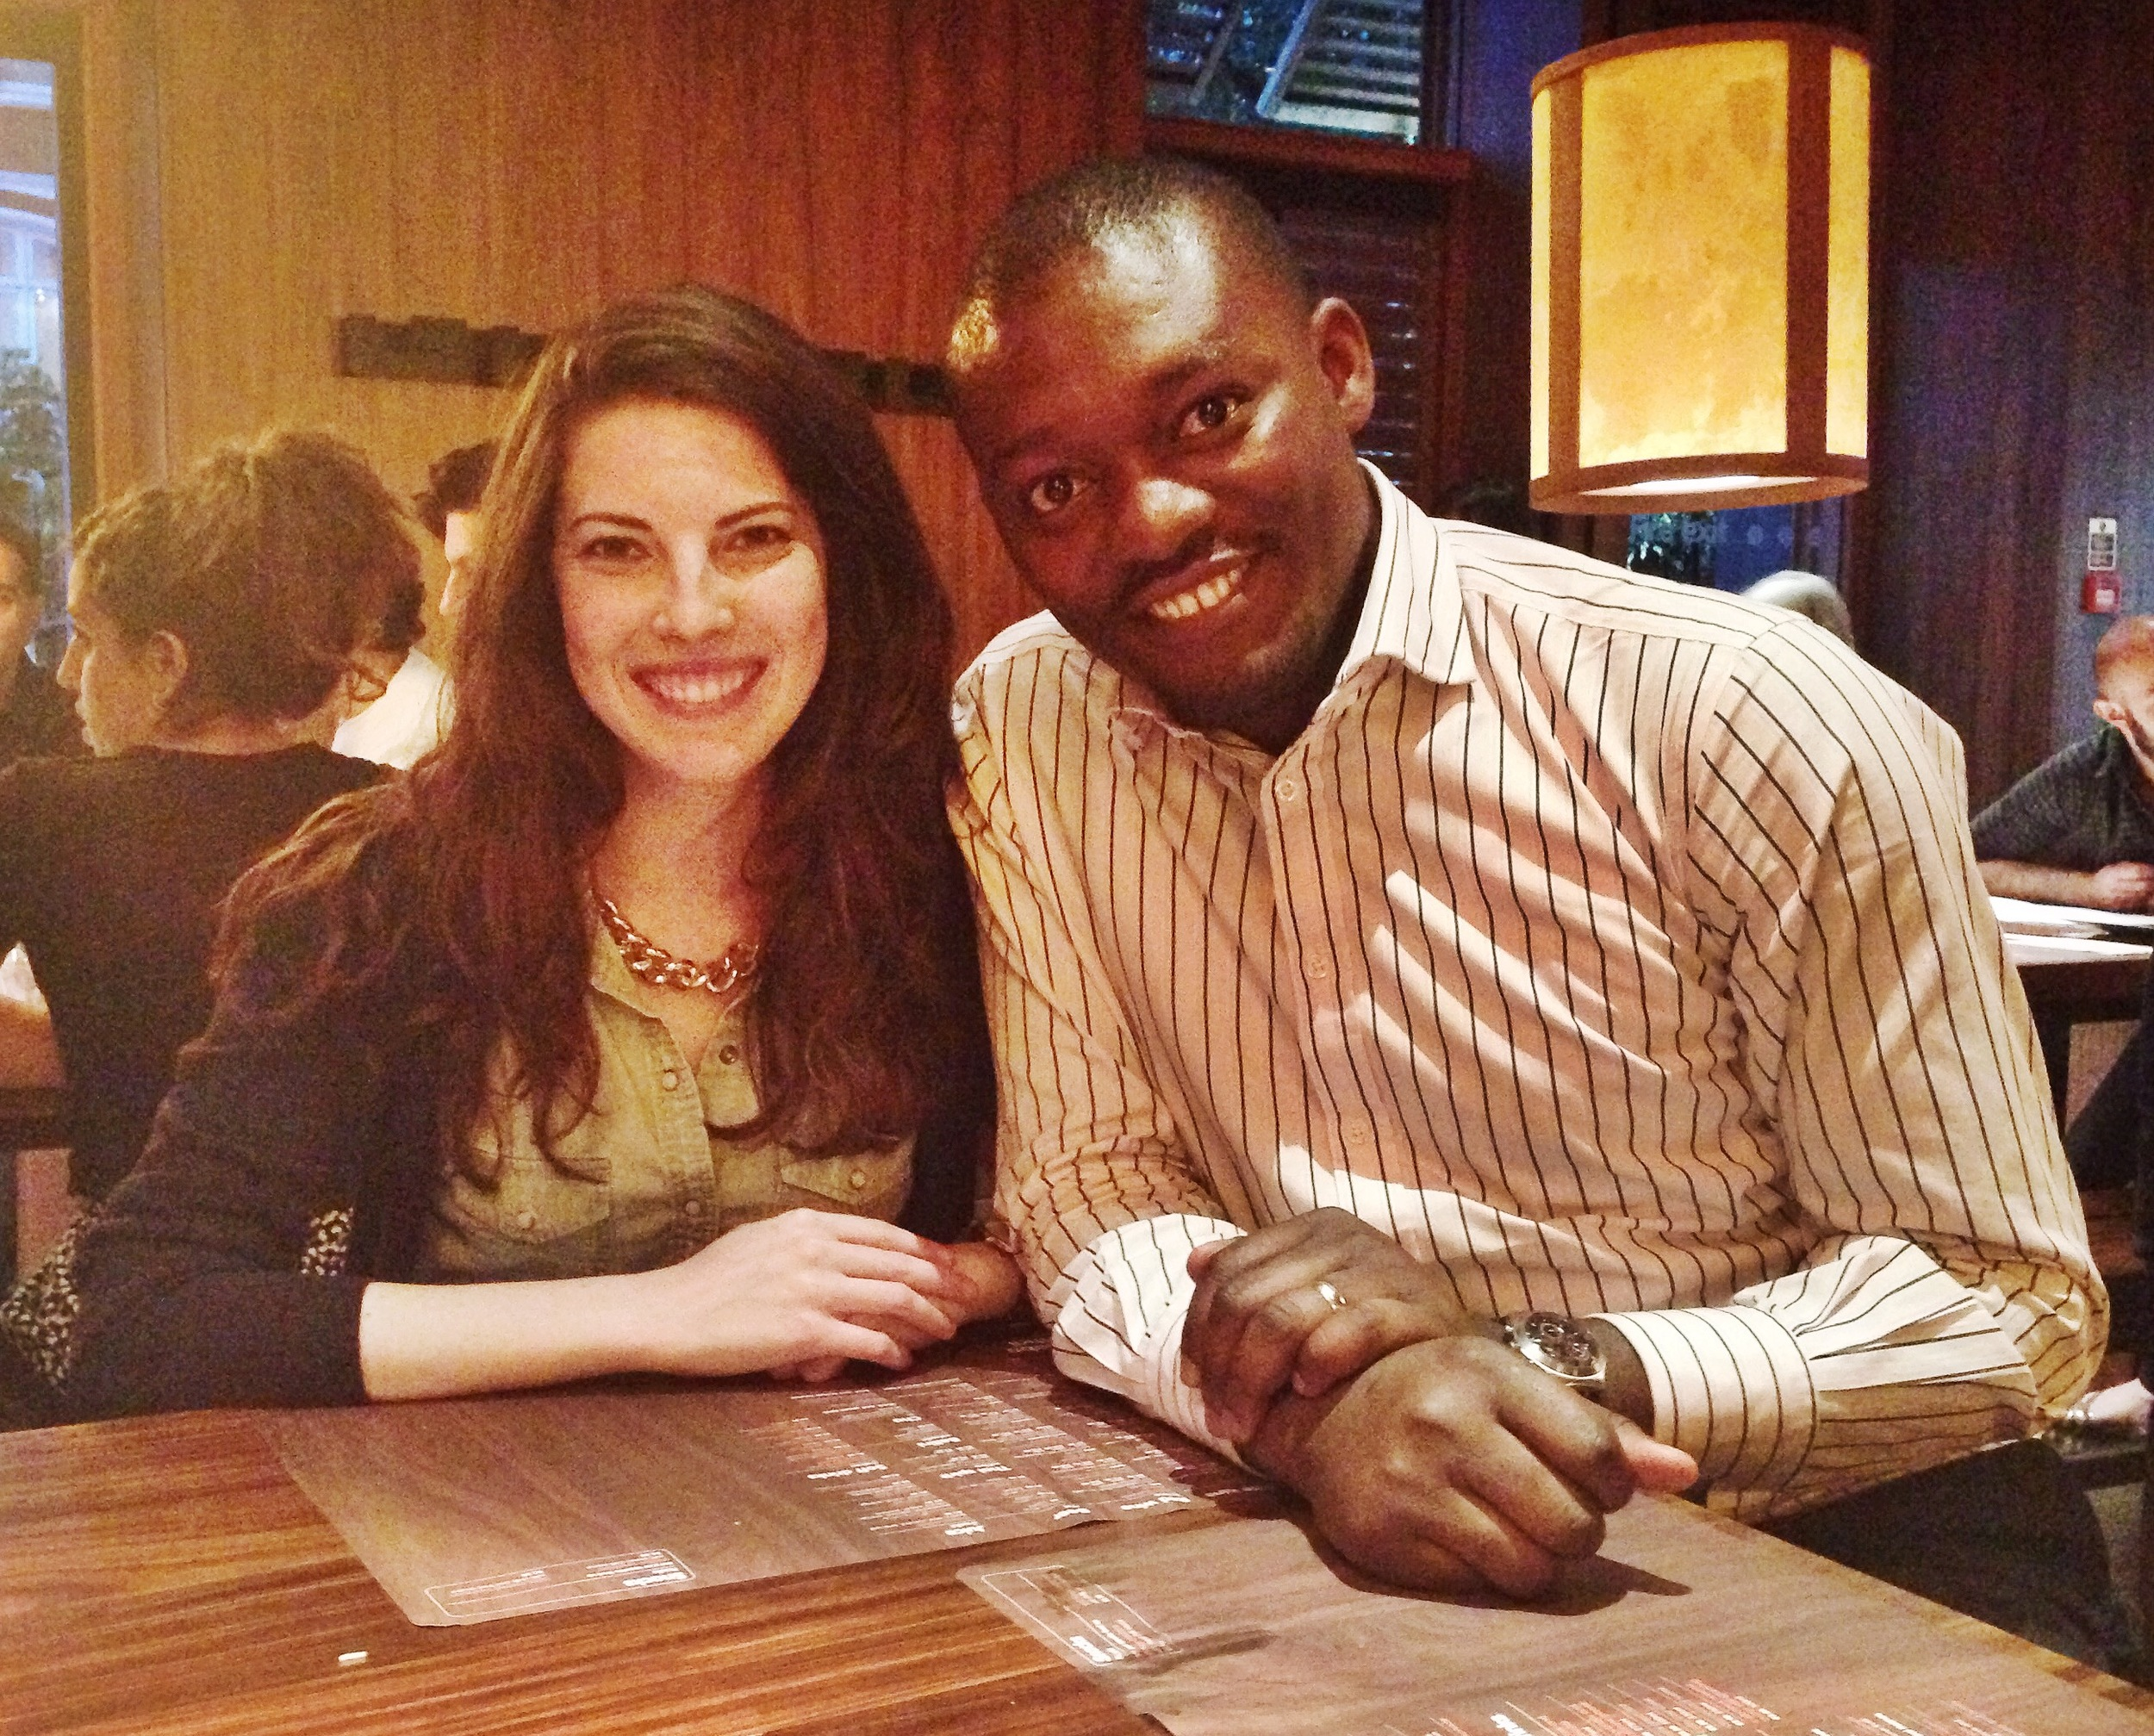 After working together remotely for some time, this week our founder, Lauren, had the chance to meet in person Seye Abimbola, a member of our Phase II research team for Nigeria. Such a wonderful visit! Photo taken: July 18, 2015.